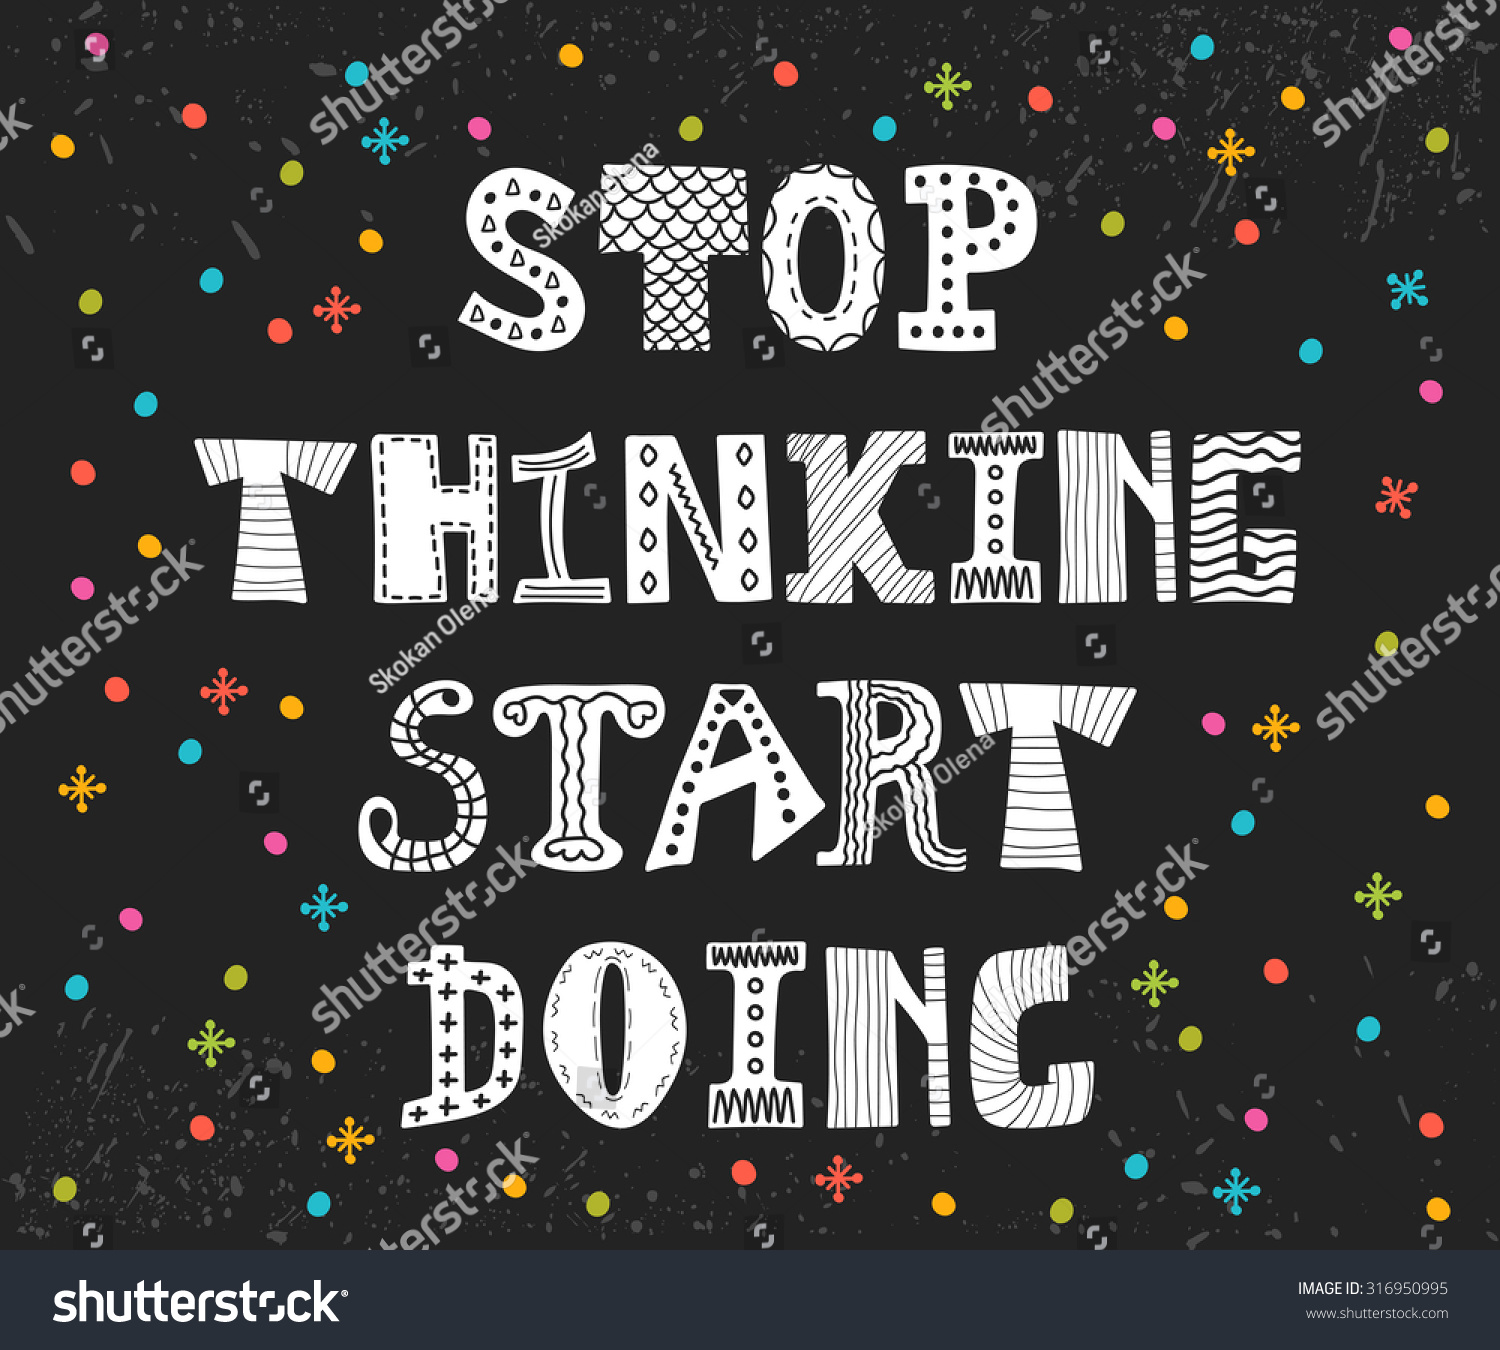 Stop Thinking Start Doing. Inspirational Quote. Motivational Postcard With  Decorative Elements. Vector Illustration